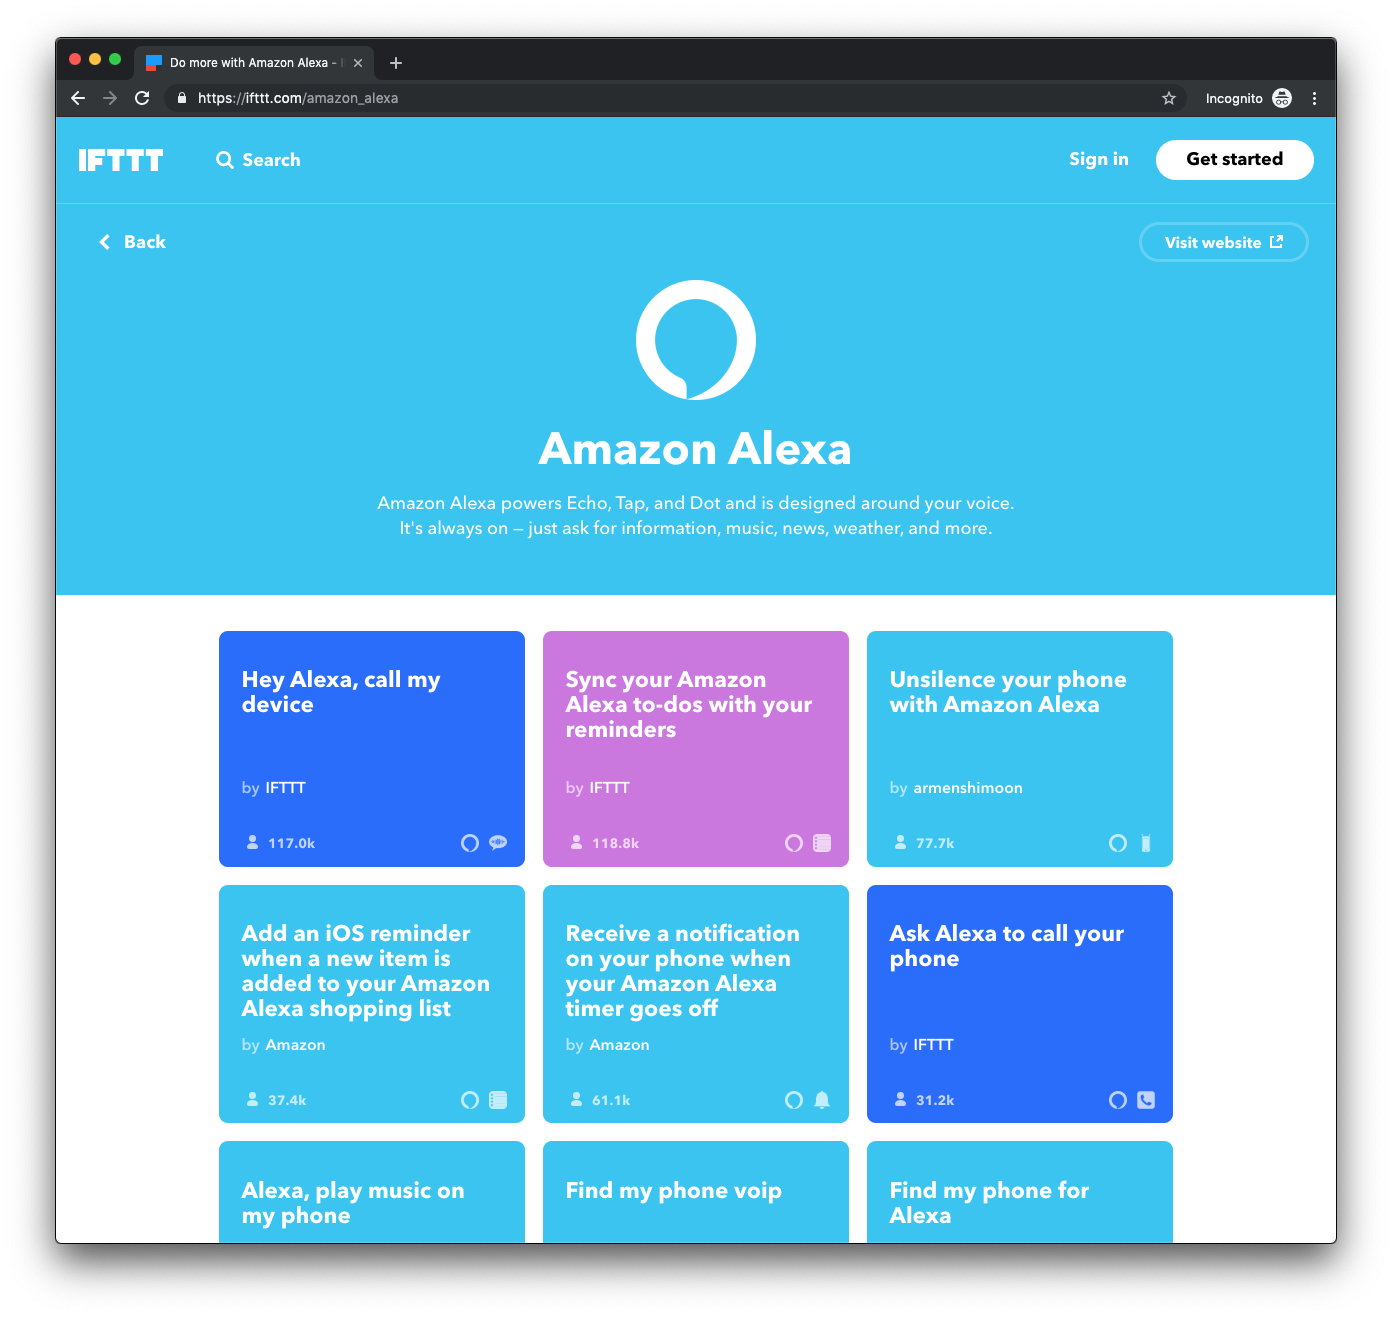 IFTTT Demo - Amazon Alexa on IFTTT